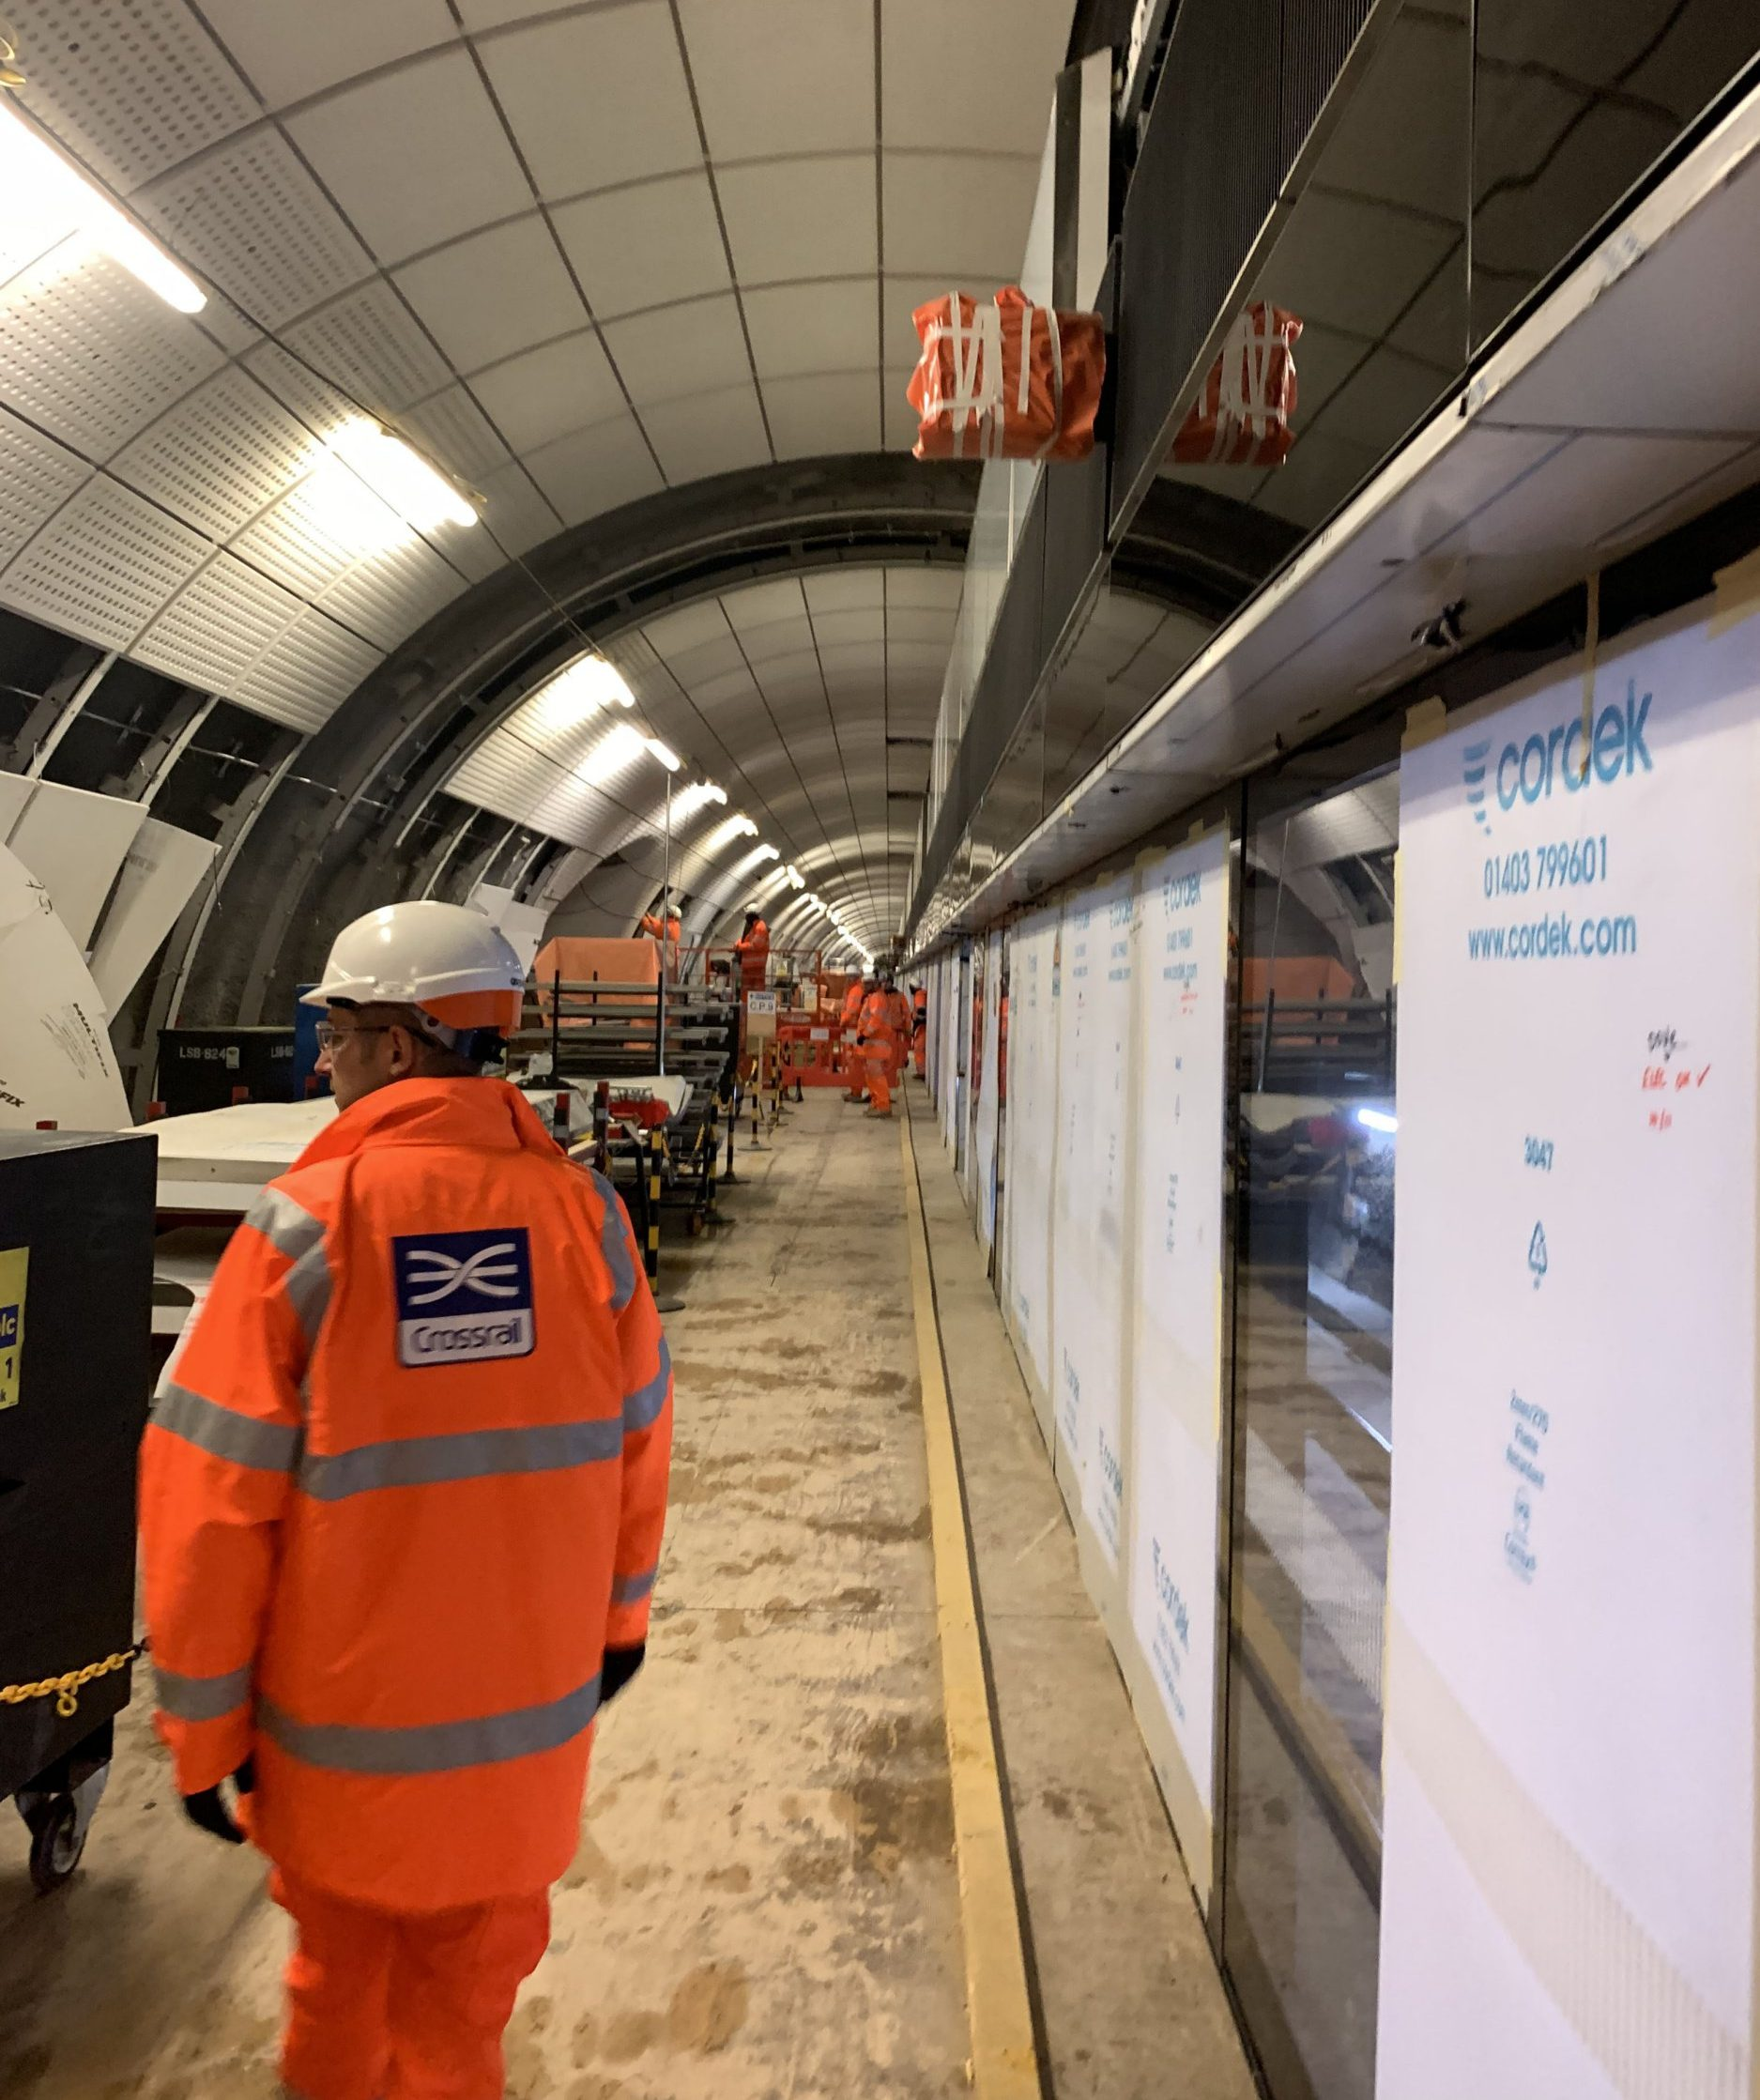 Stark extent of Crossrail's unfinished work revealed with Bond Street station months away from completion. Bond Street is months from completion, without floors, ceilings, escalators, a fire safety system or permanent power supply. It was announced last month that the 73-mile rail scheme?s costs had soared ?2.8 billion to ?17.6 billion and that it may not open until 2020. ? Julian Glover / Evening Standard / eyevine Contact eyevine for more information about using this image: T: +44 (0) 20 8709 8709 E: info@eyevine.com http://www.eyevine.com